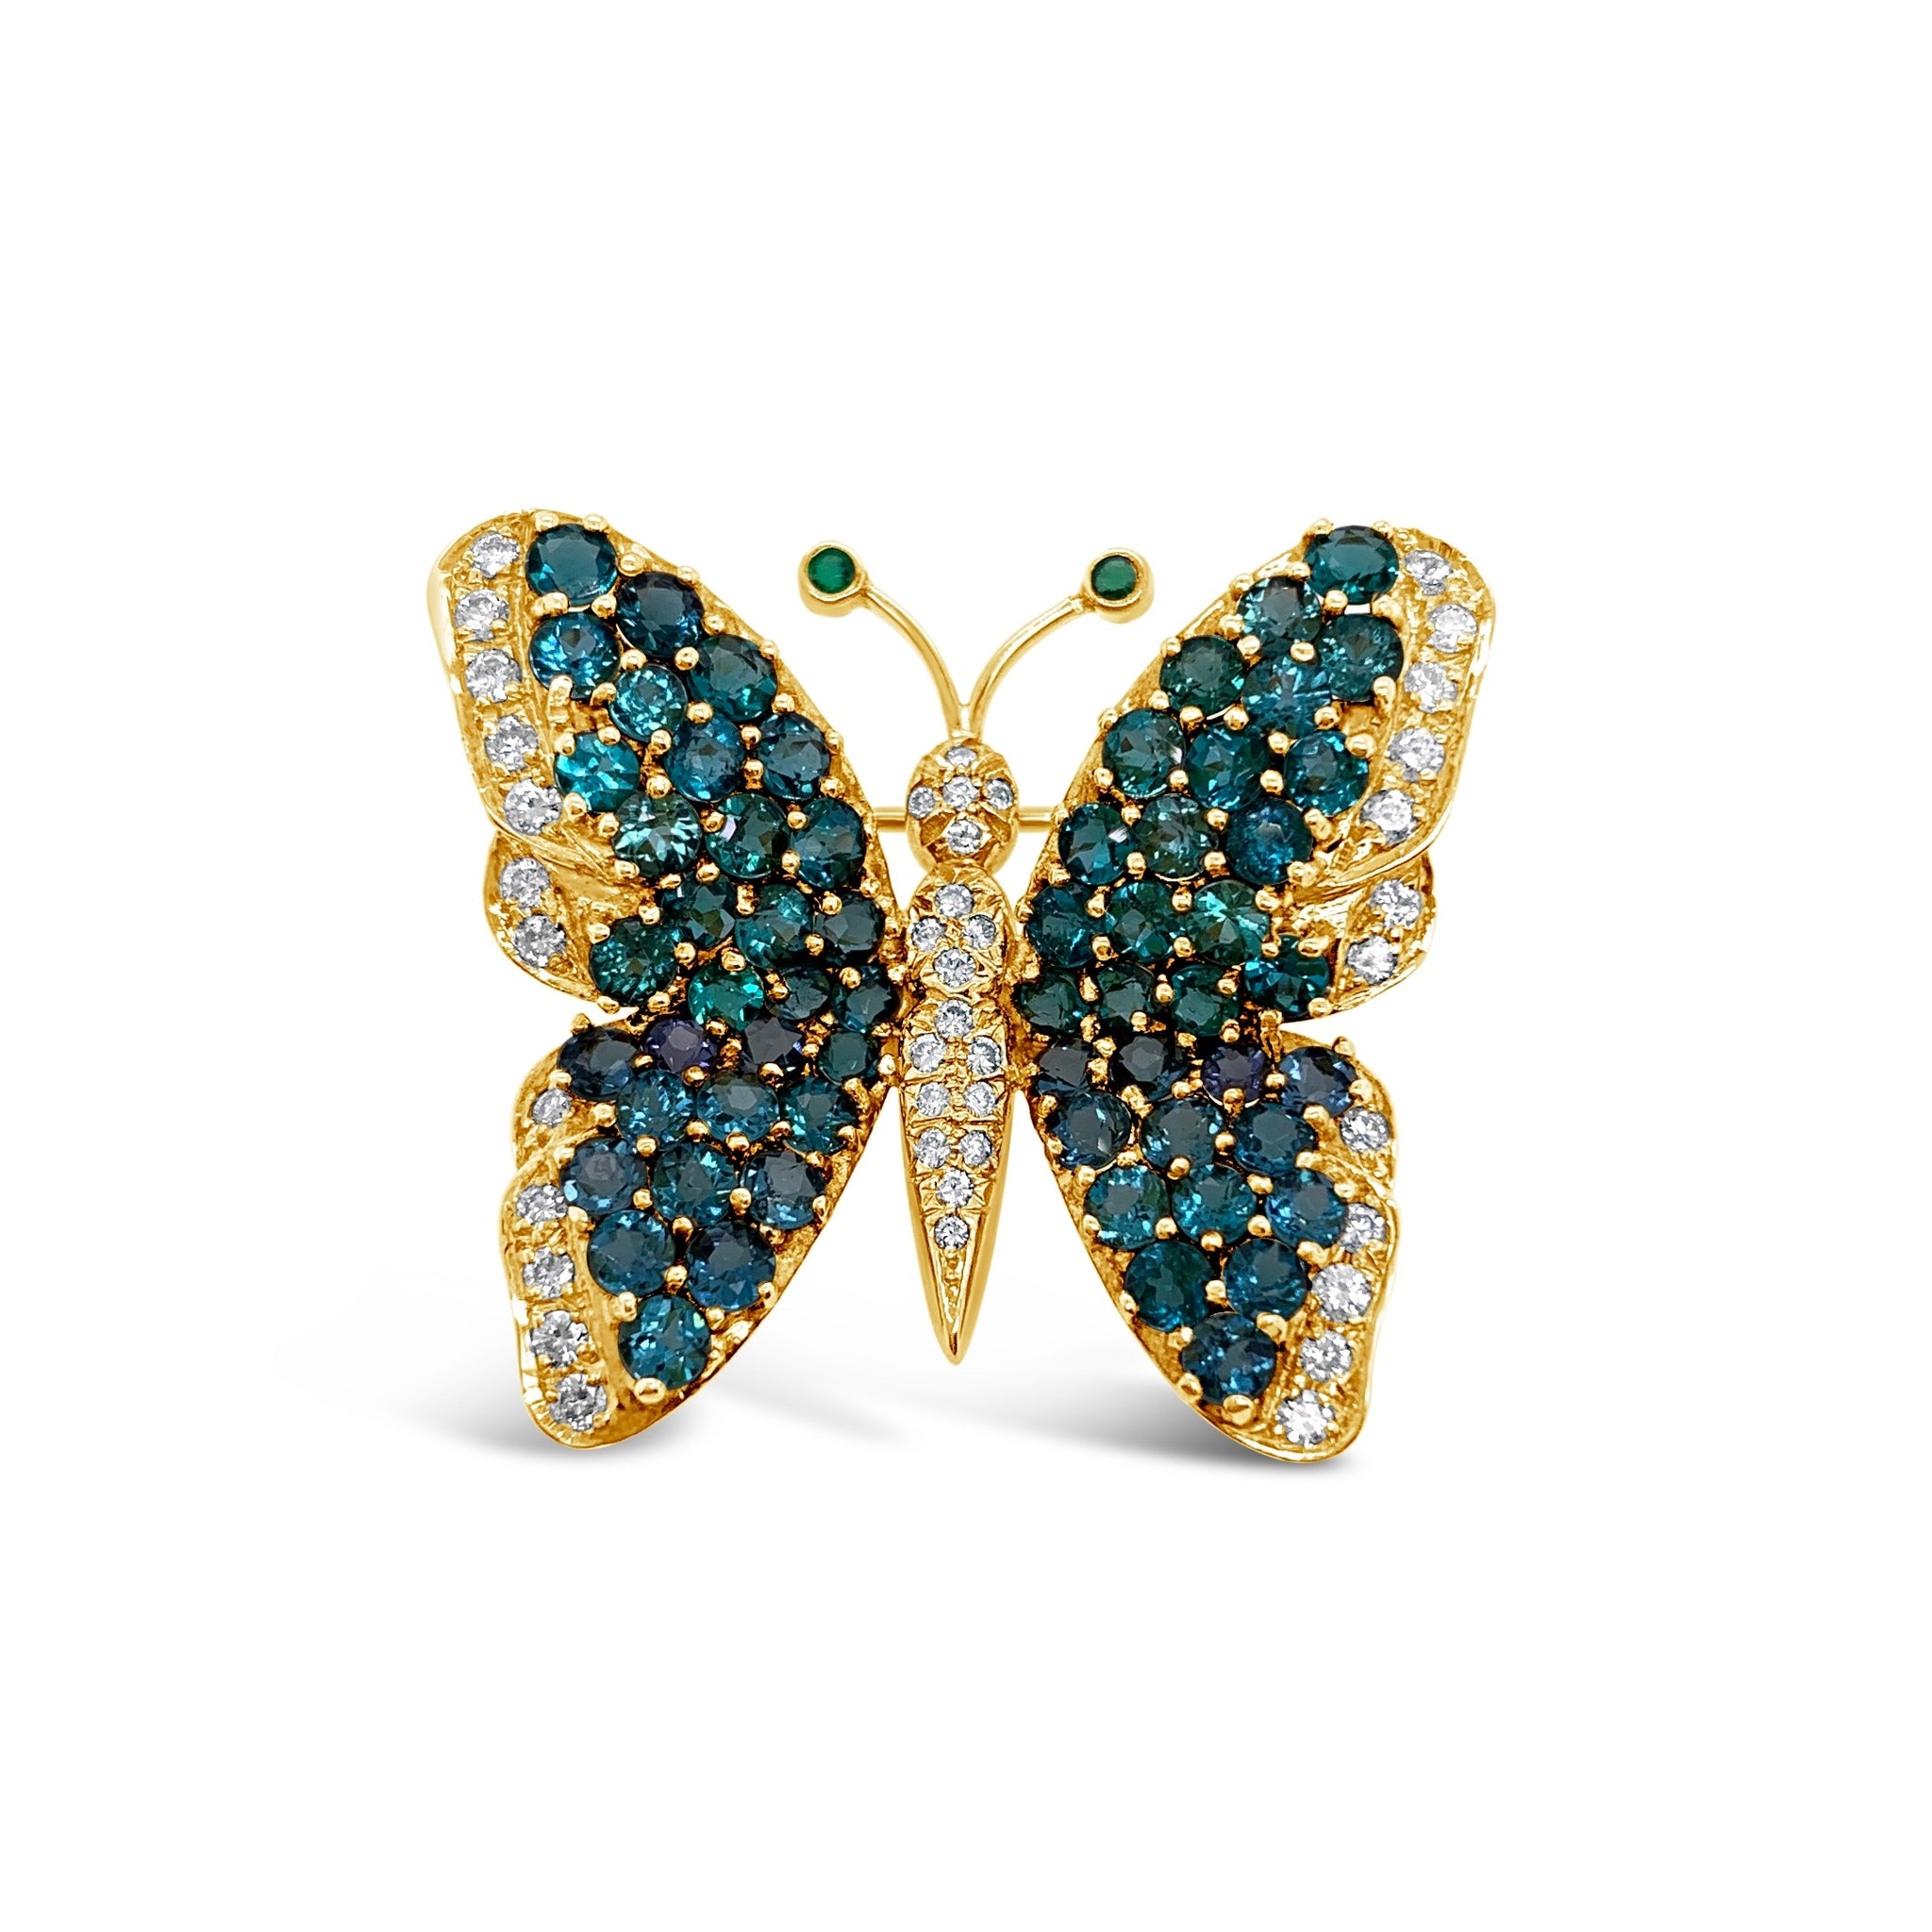 Paraiba Tourmaline Butterfly Pin